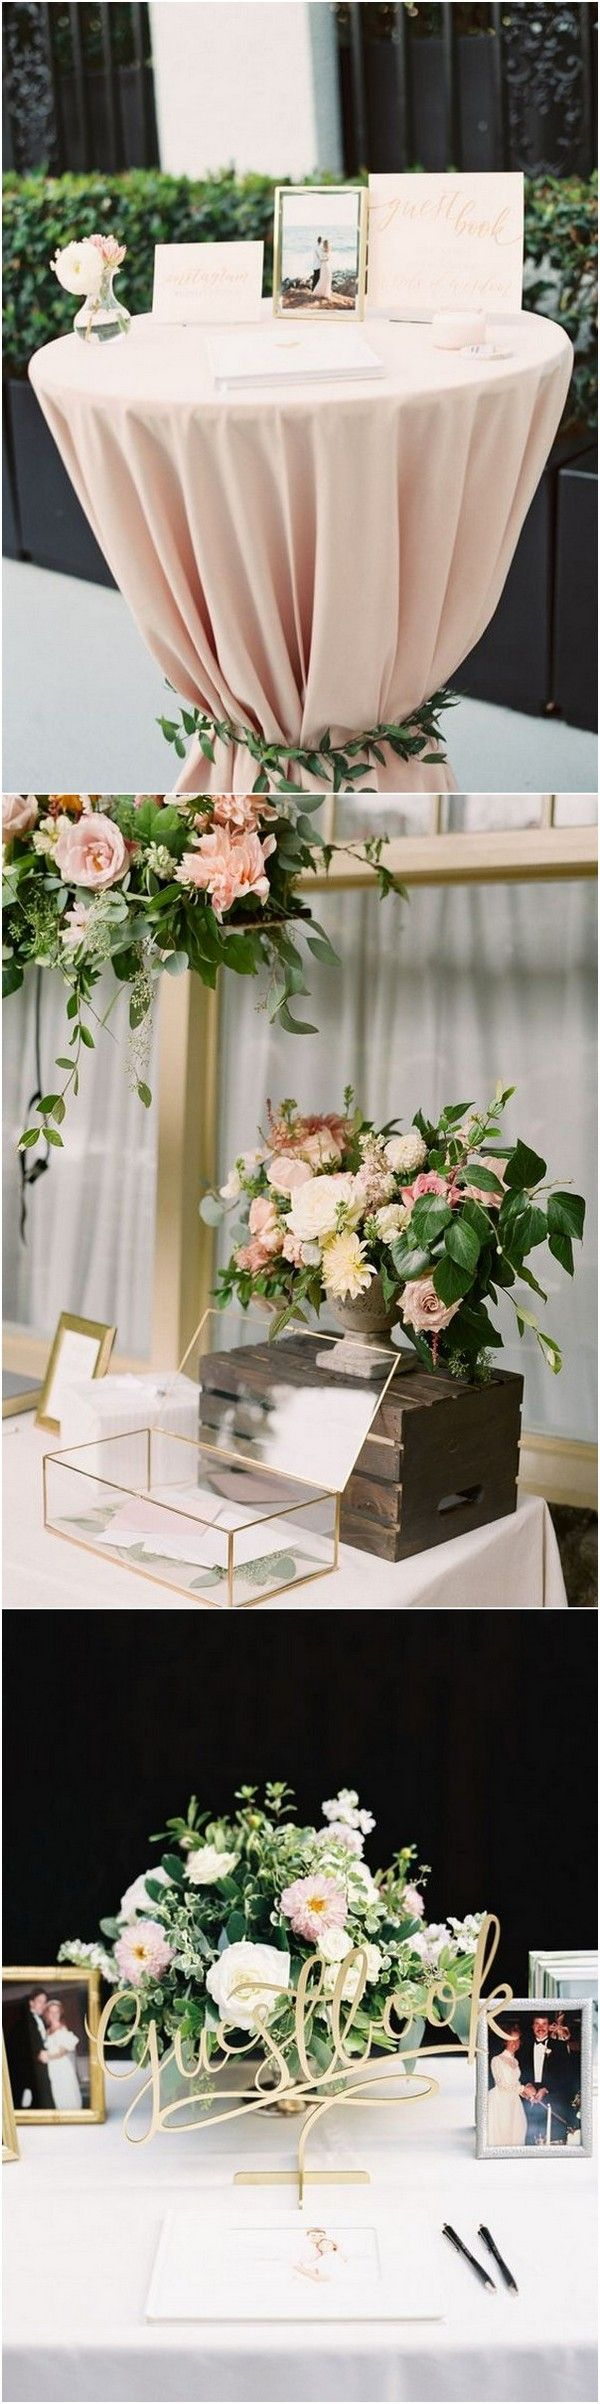 Wedding guest book sign in table decoration ideas #weddingideas #weddingdecor #weddingreception